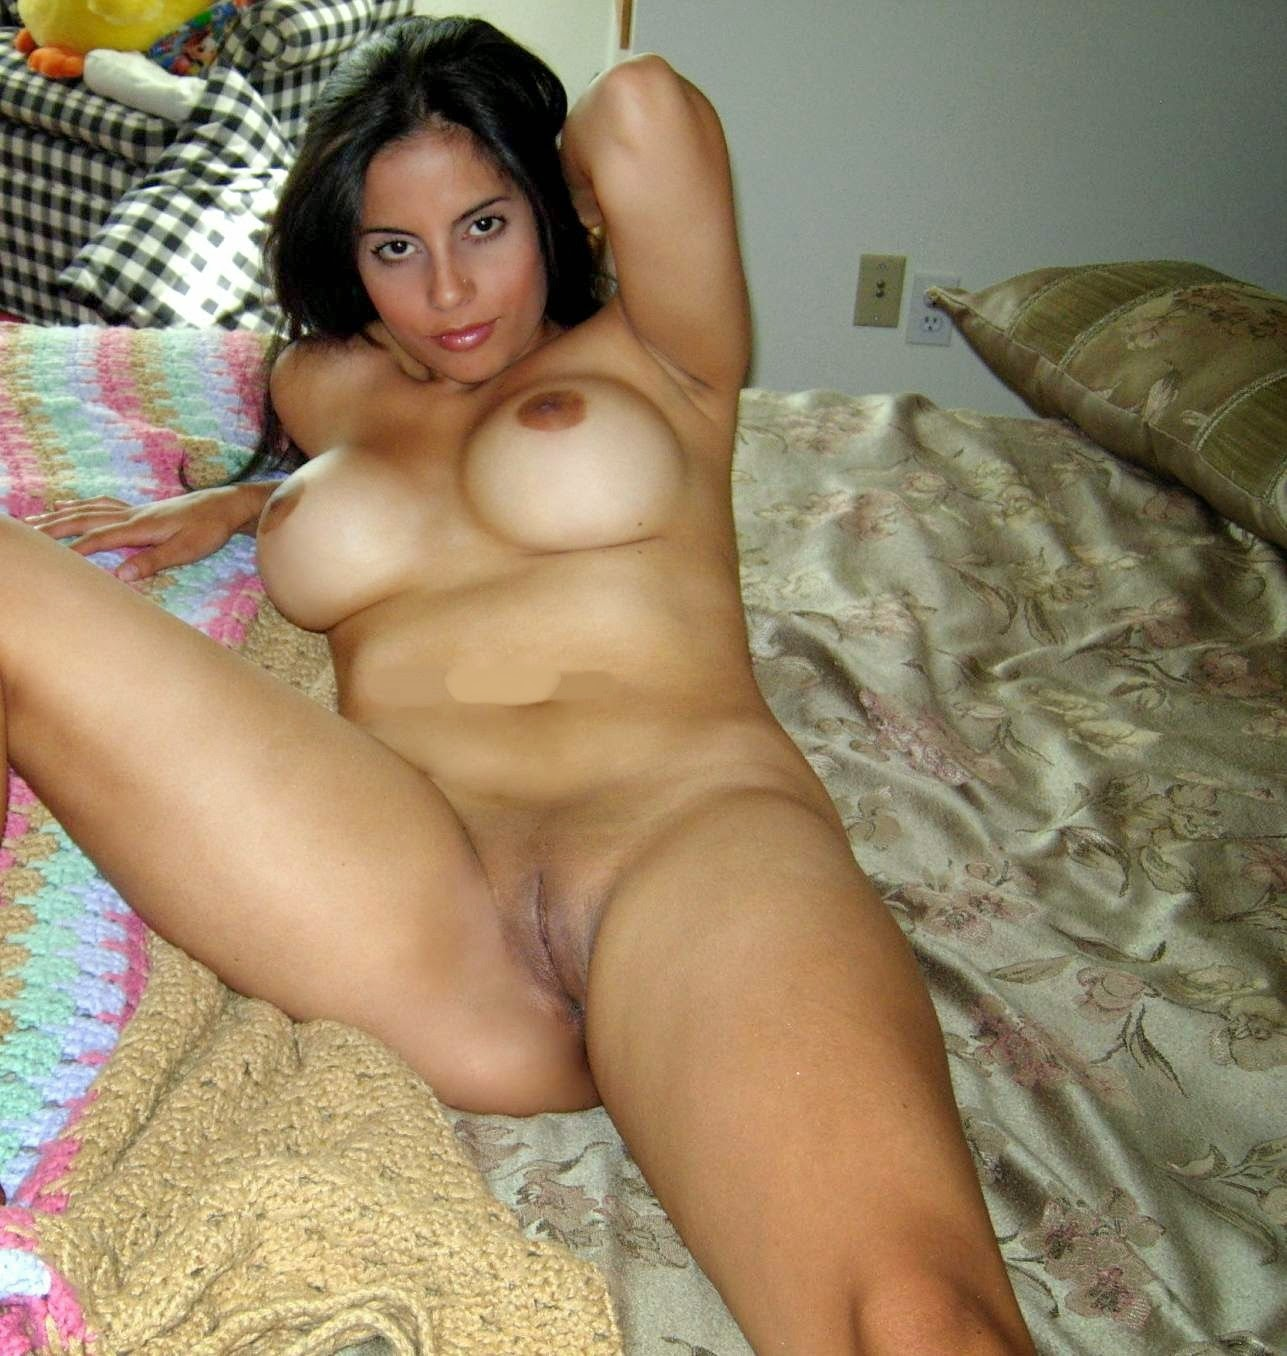 Naked pakistani sex pics maybe